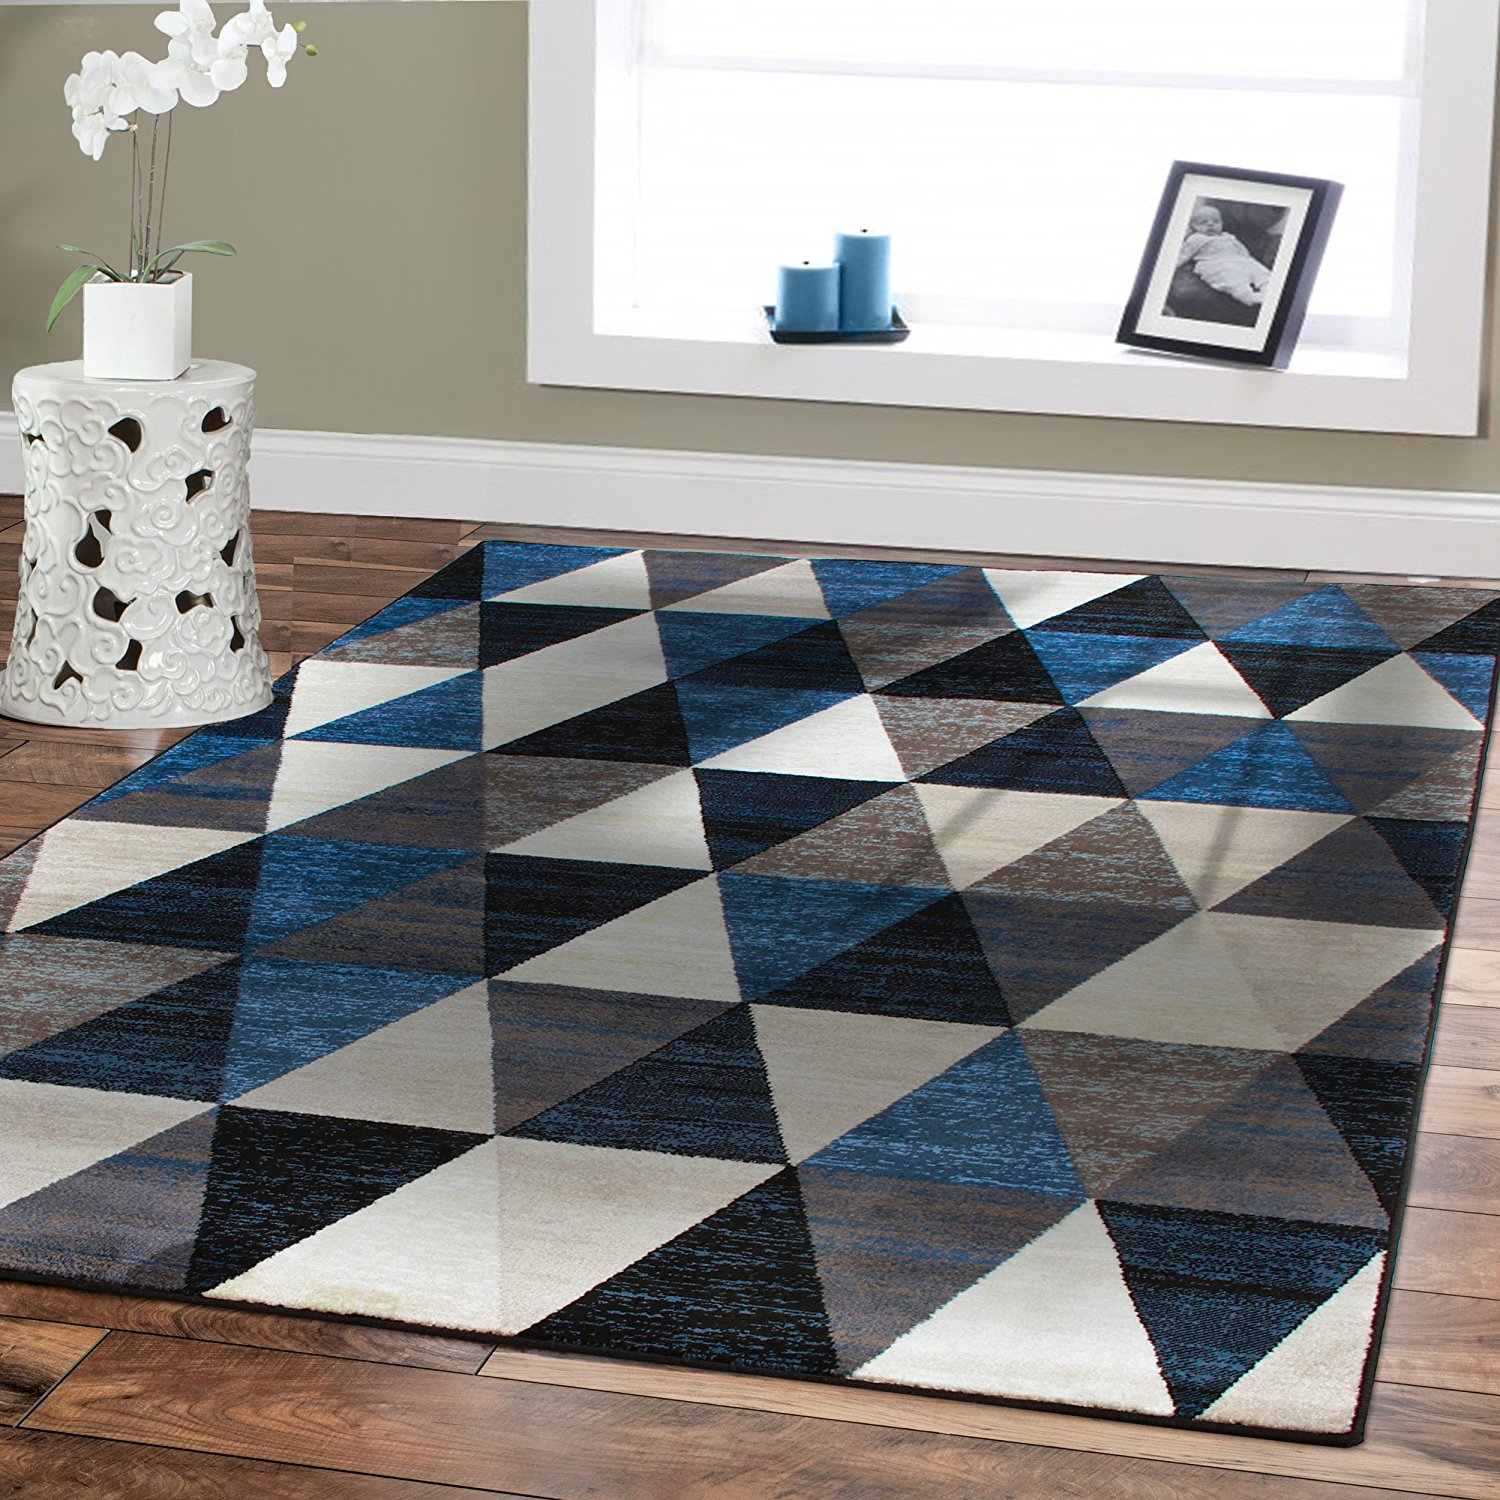 amazon.com: premium large rugs 8x11 modern rugs for brown sofa blue rugs SXQOAVF